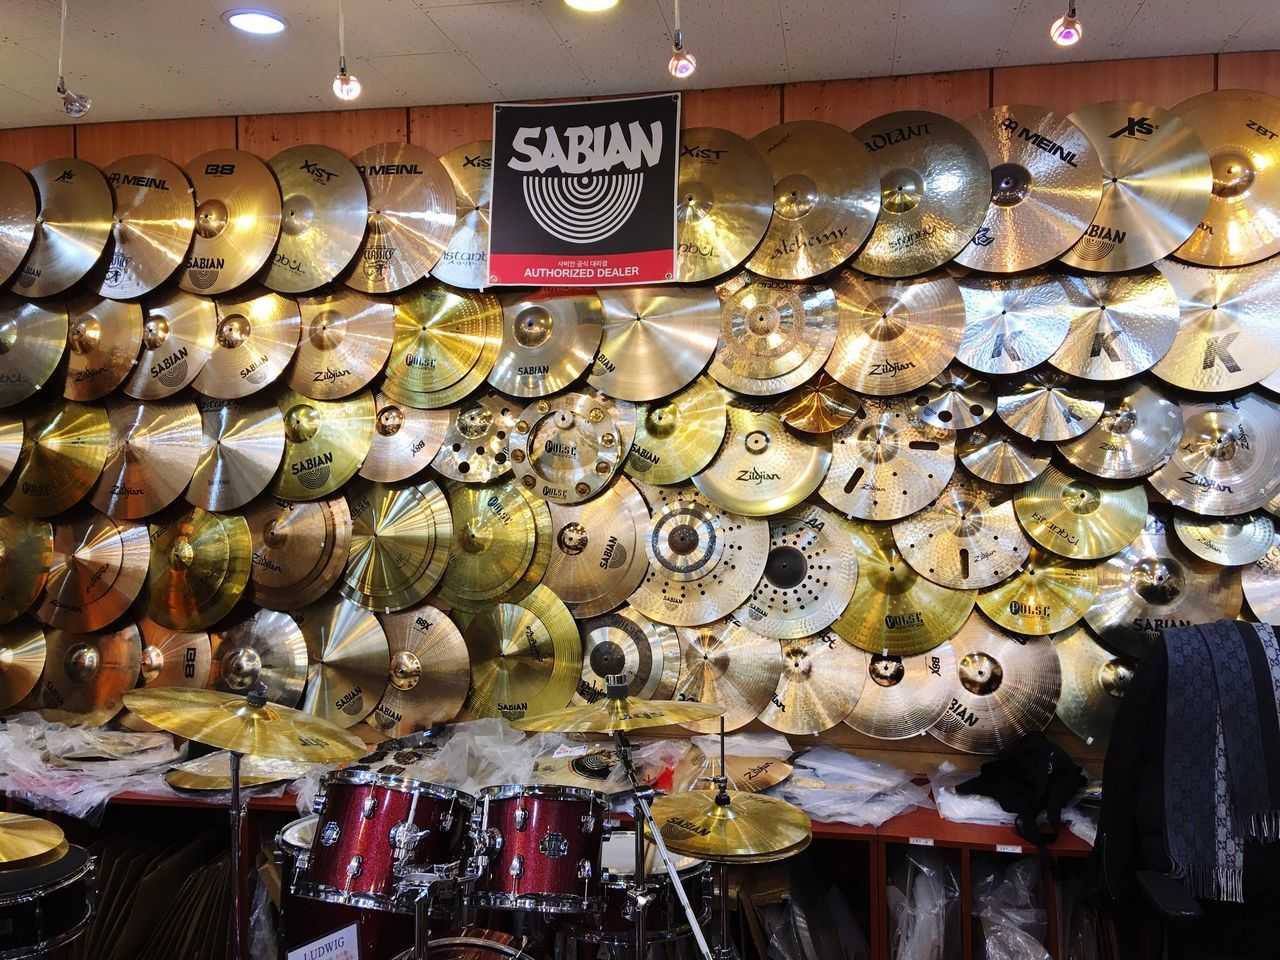 Cymbals Drums Instruments